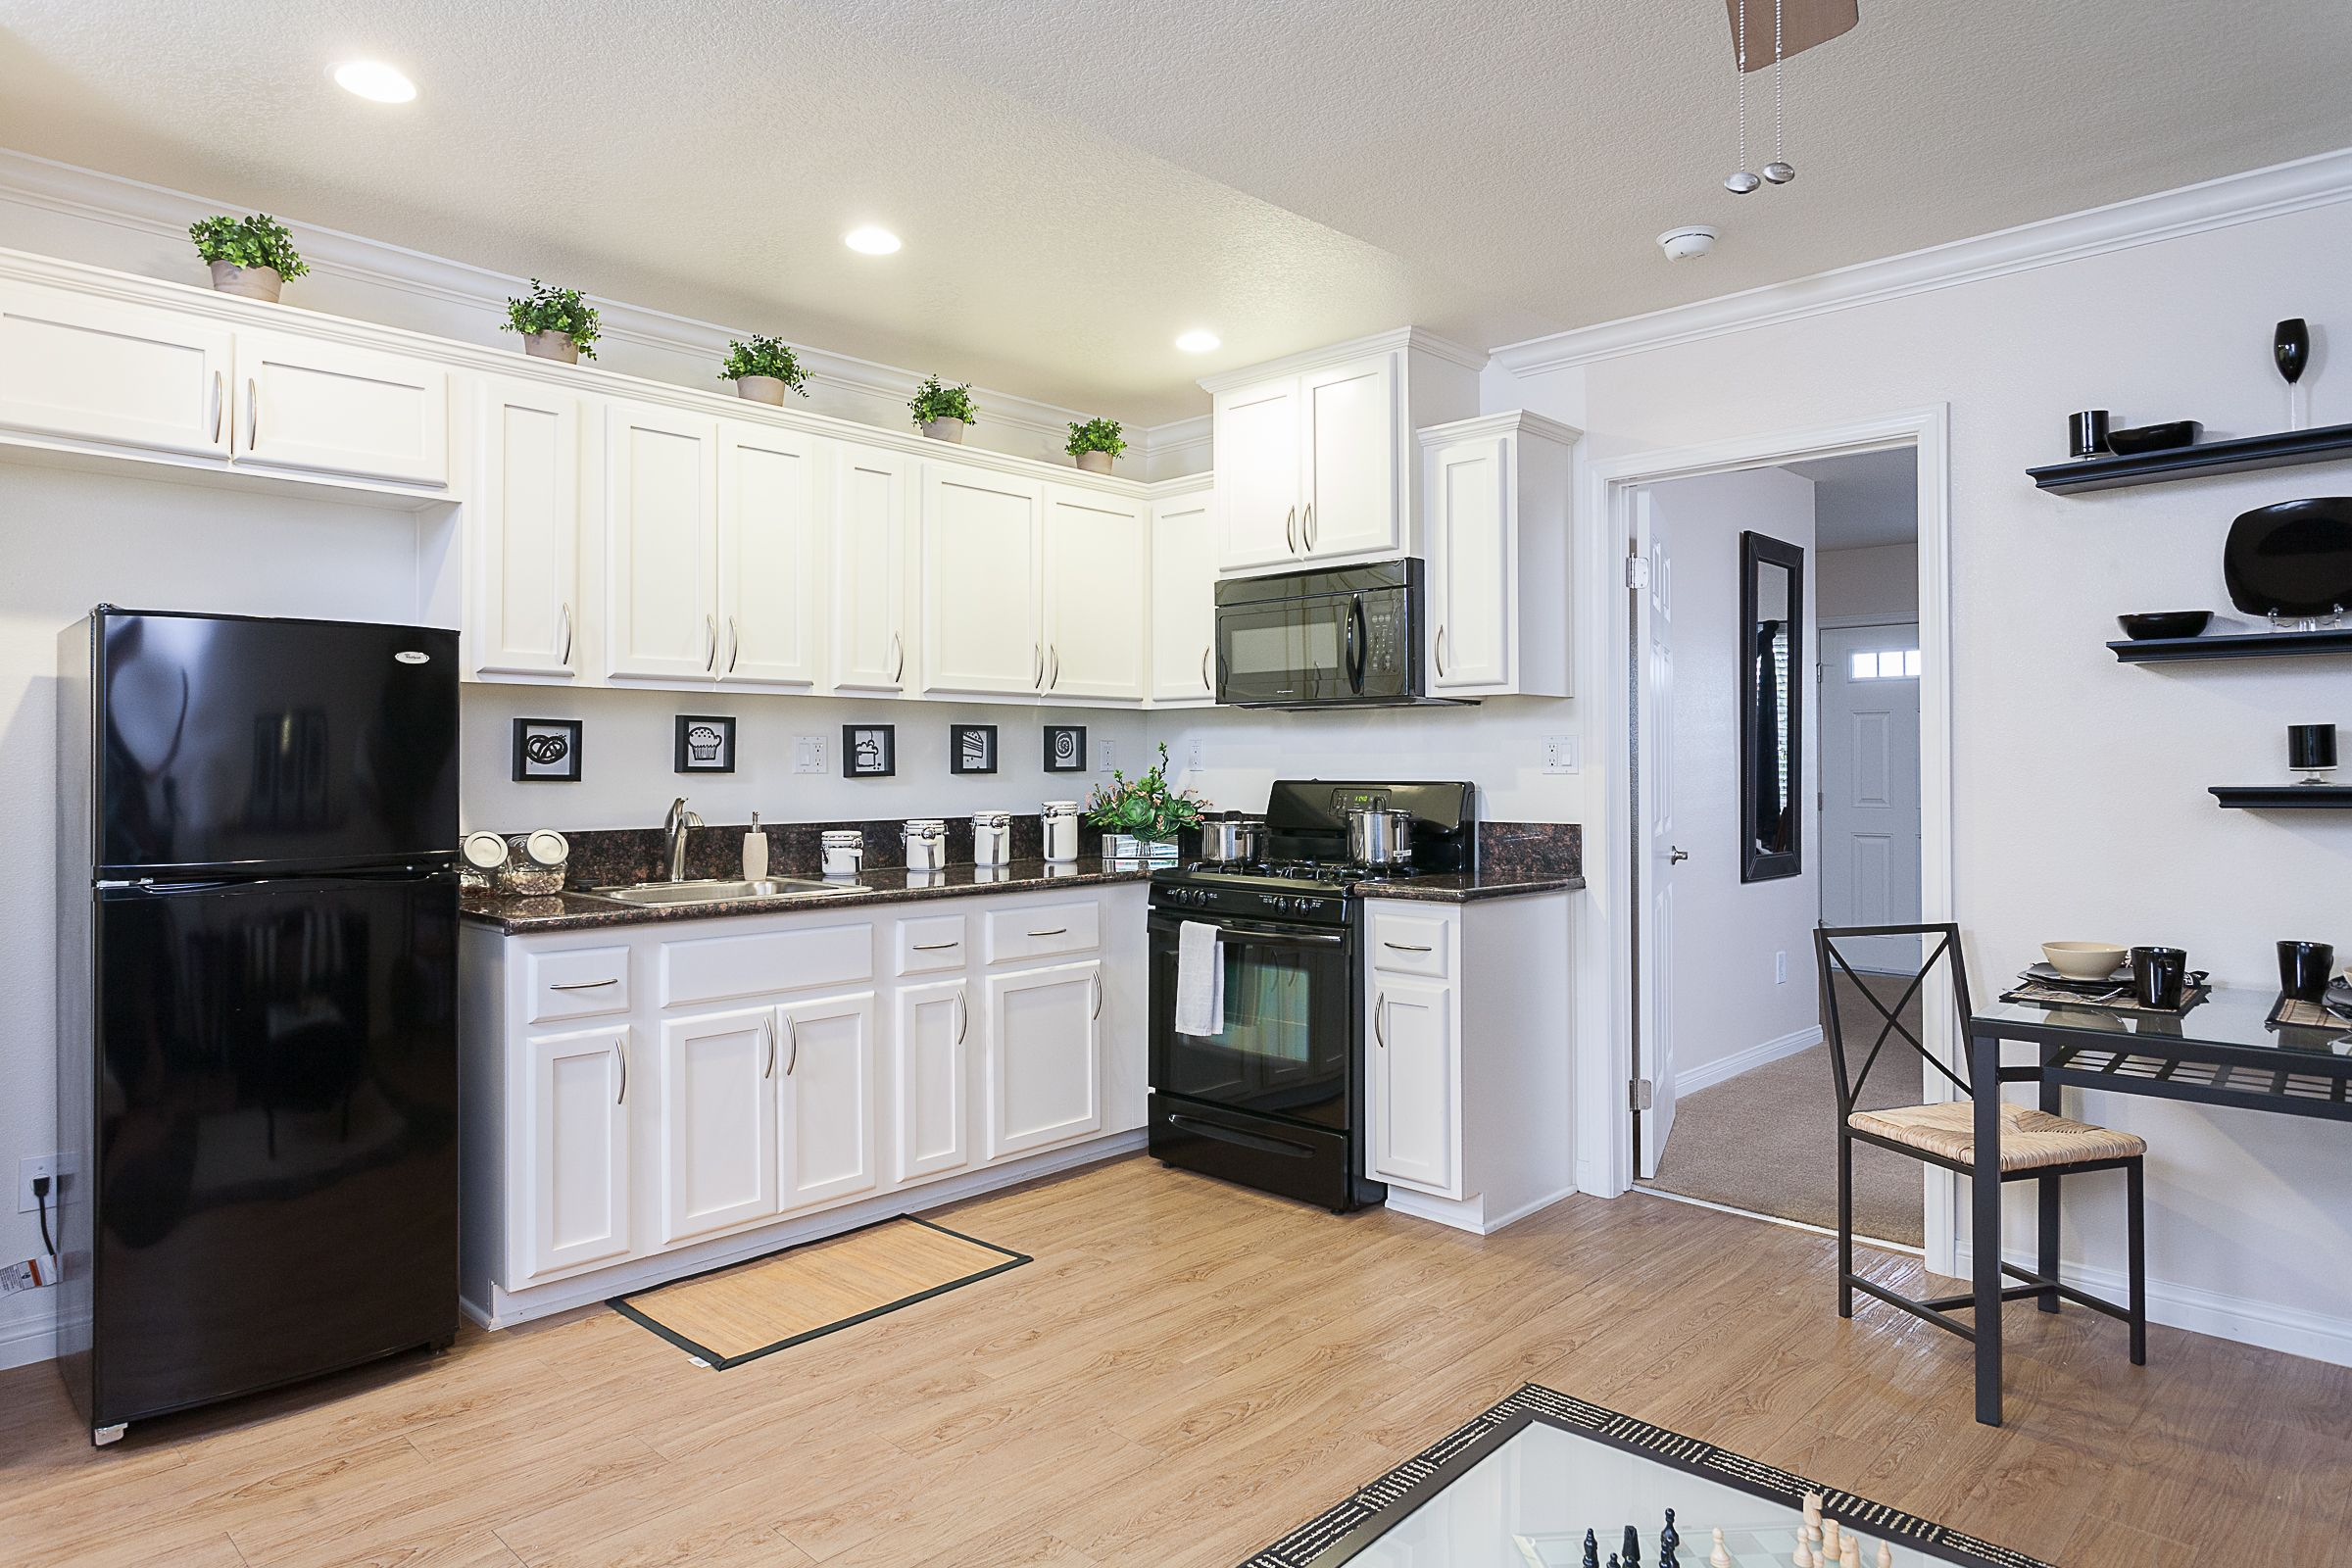 Kitchen goals at CALIFORNIA PALMS APARTMENTS IN SANTA ANA ...